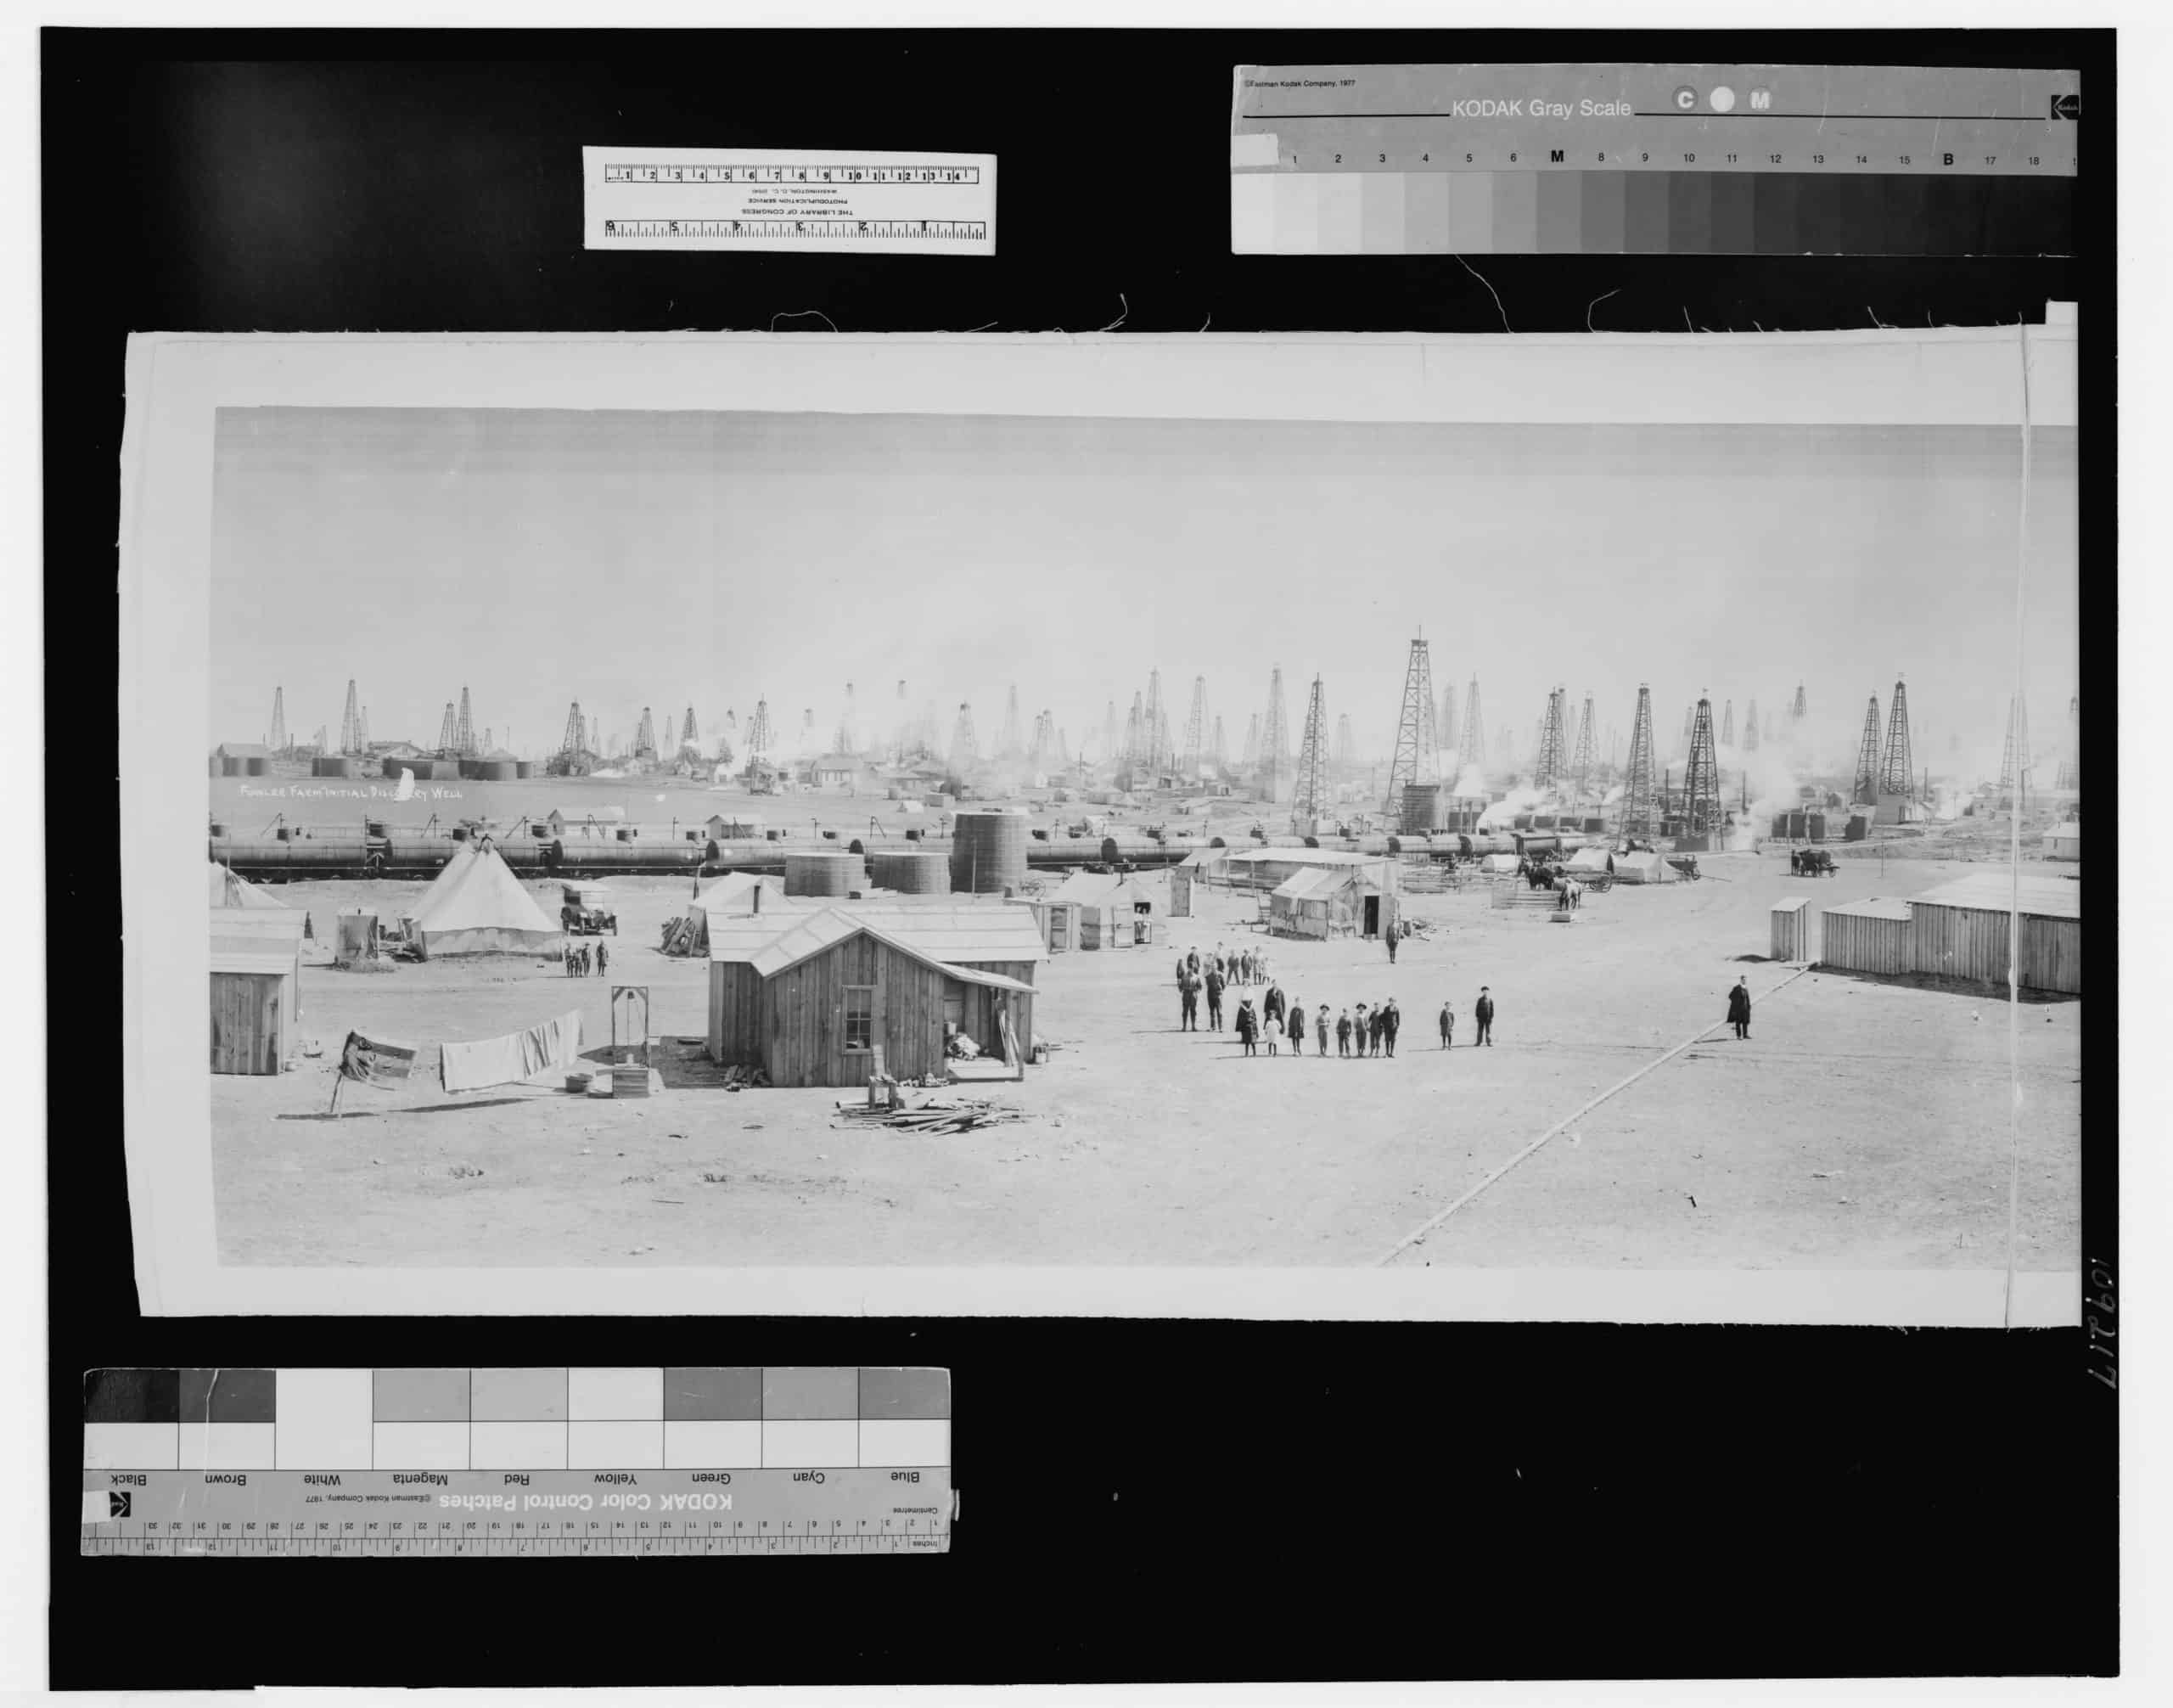 Burkburnett, Texas, the world's wonder oil pool, showing 8 months phenomenal development, viewed from the northwest side, opposite Fowler farm, original discovery well and swinging towards the northwest